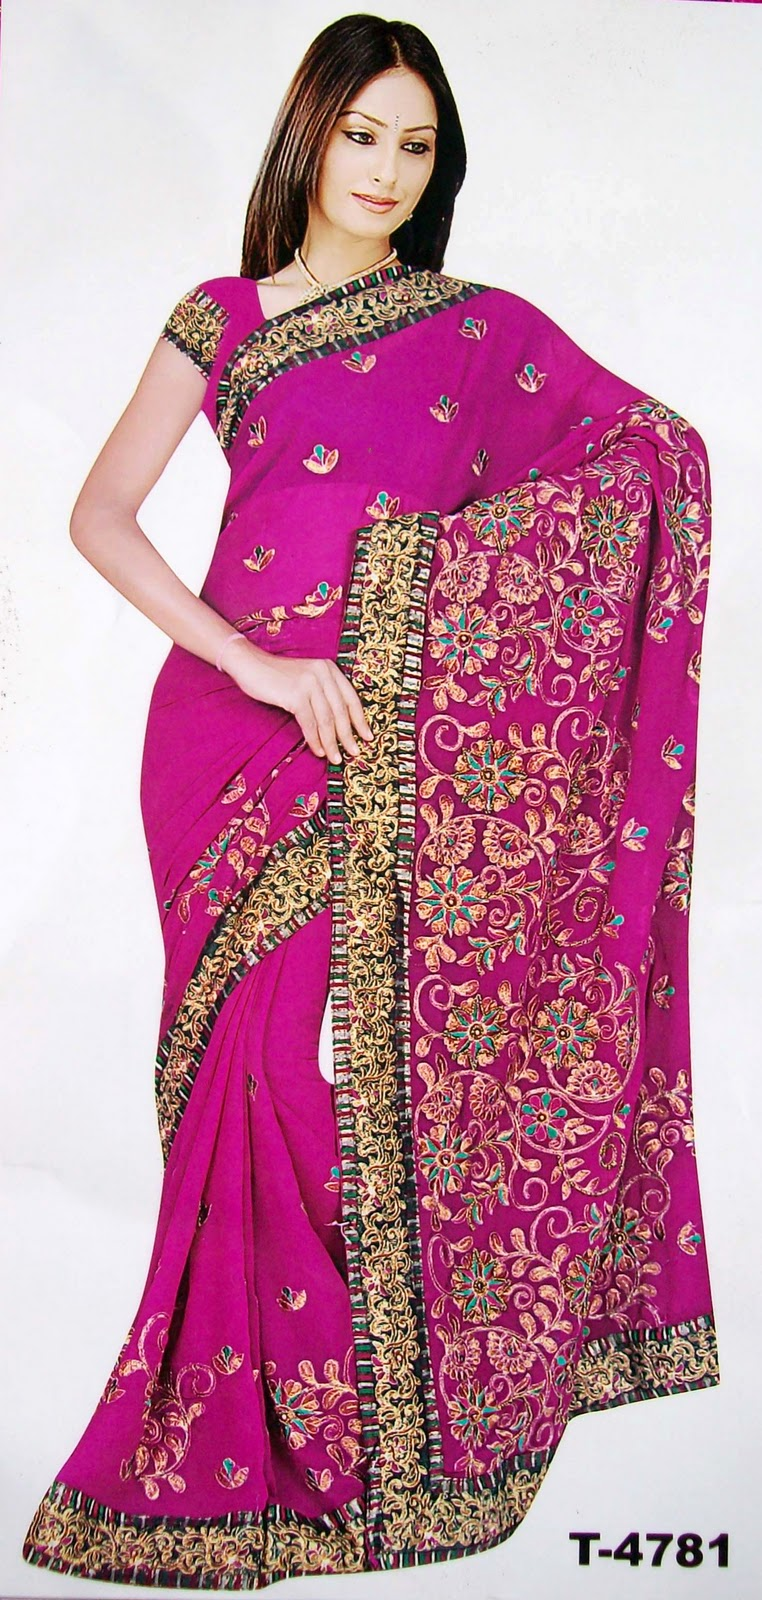 Gajri pink sari with blouse online shopping India | Your Designer ...